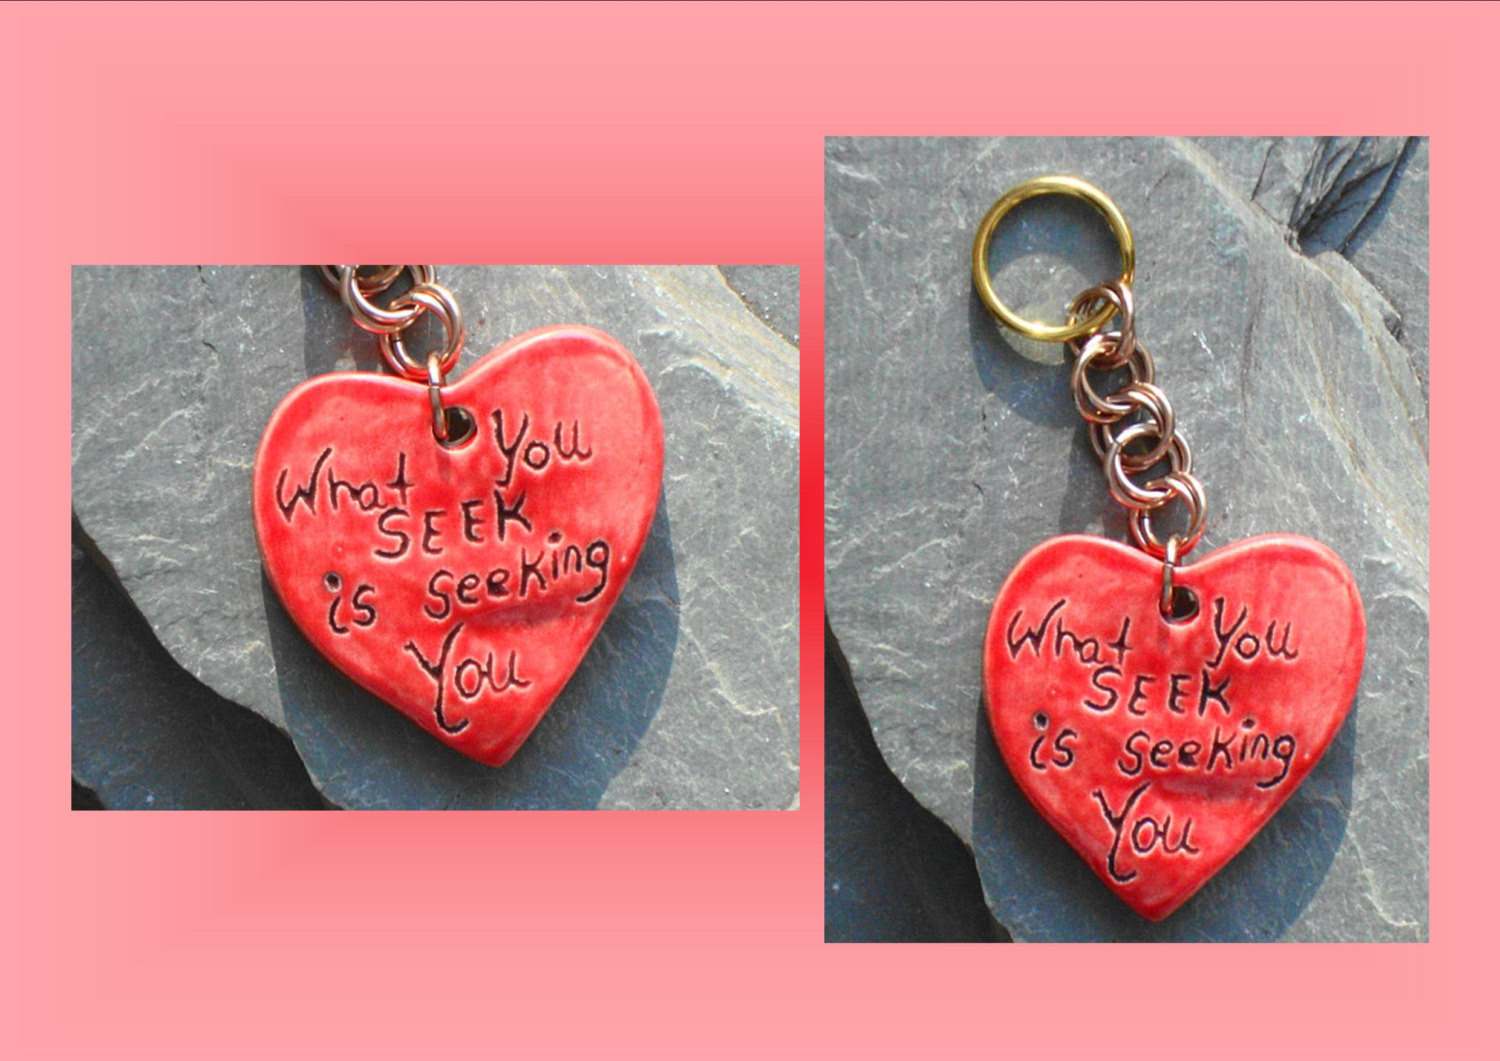 Ceramic Pendant Love Pendant Love Quotes Valentine Pendant Red Heart Heart Love Keychain Purse Accessory Brass